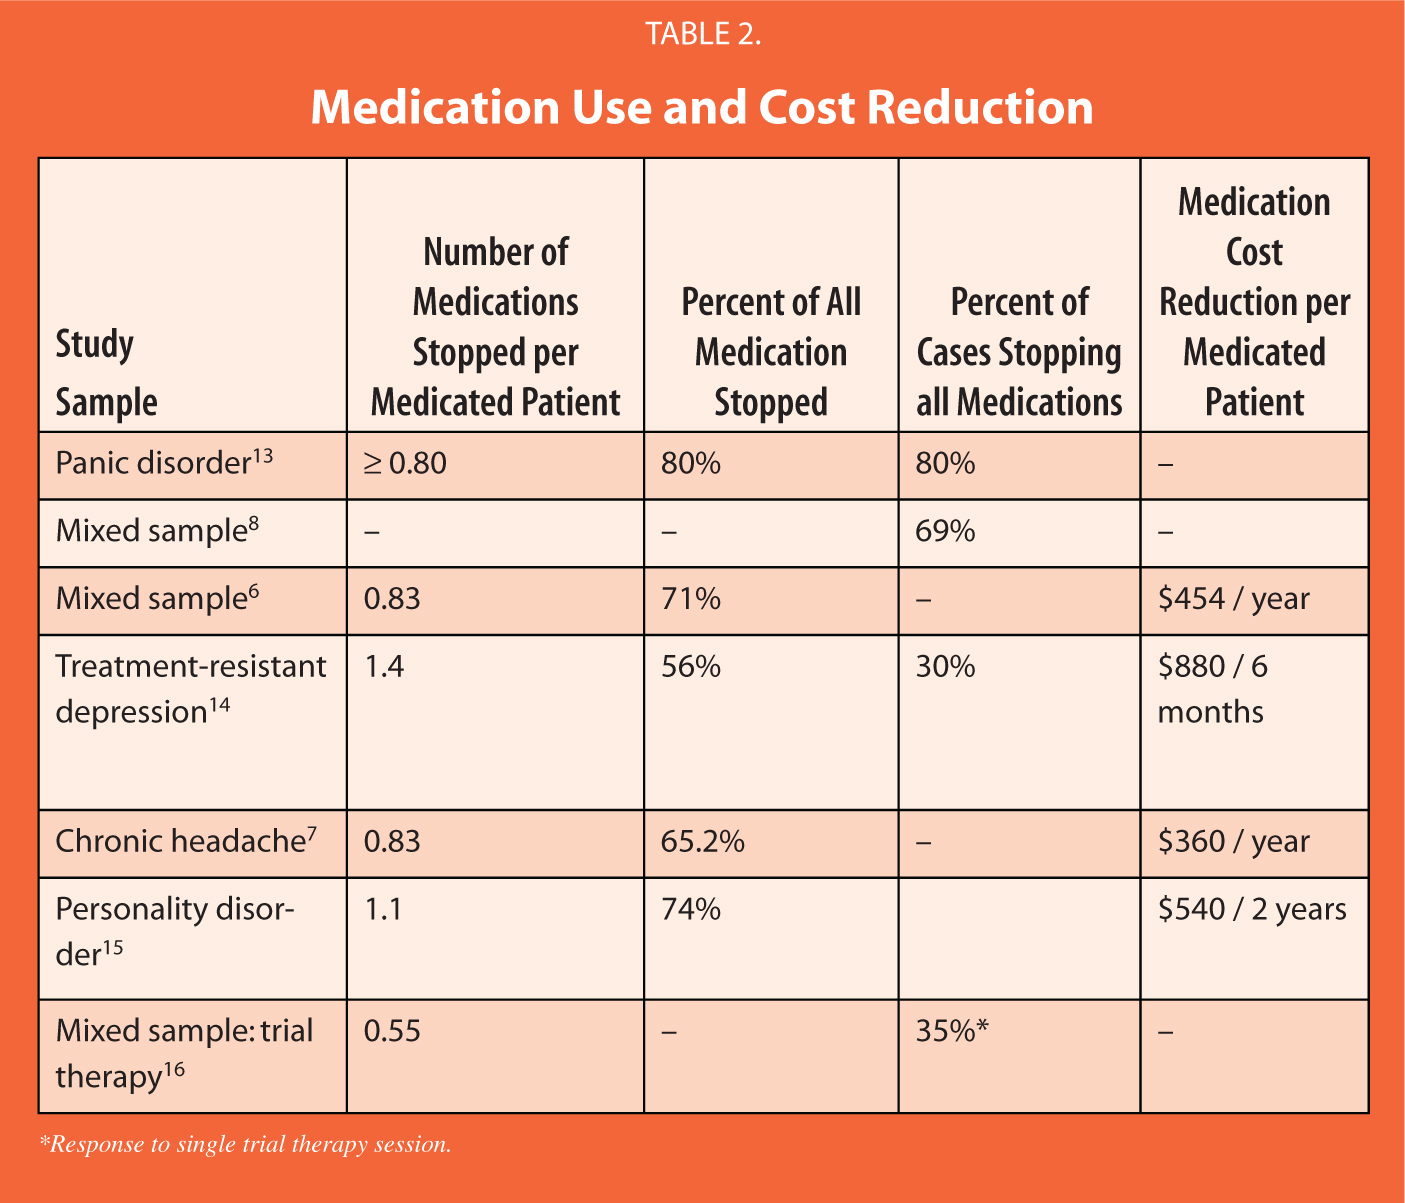 Medication Use and Cost Reduction